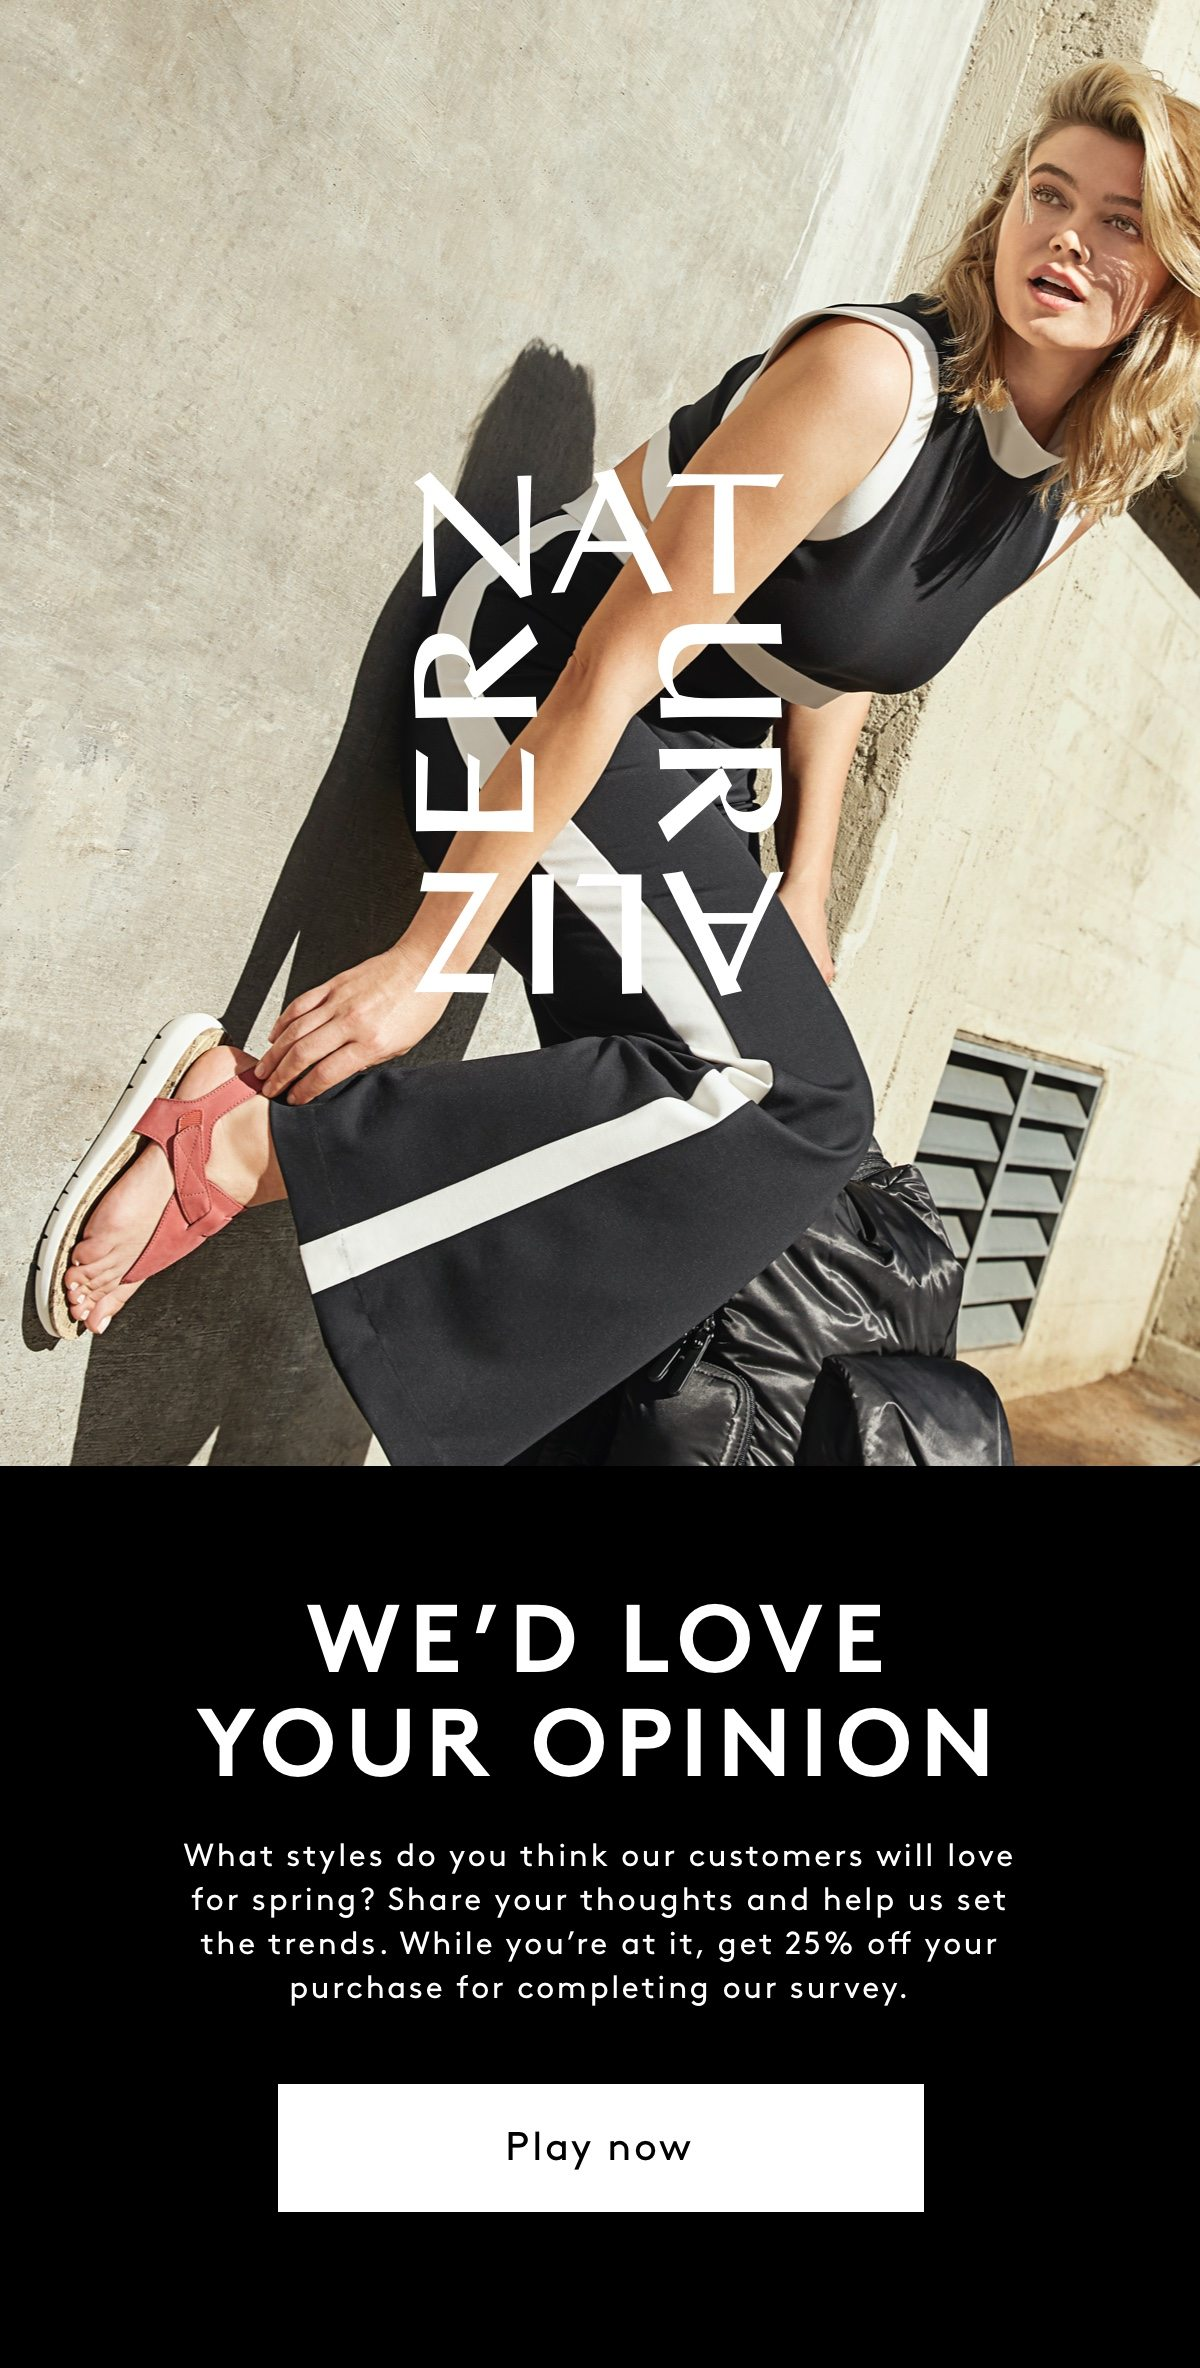 >>We'd love your opinion